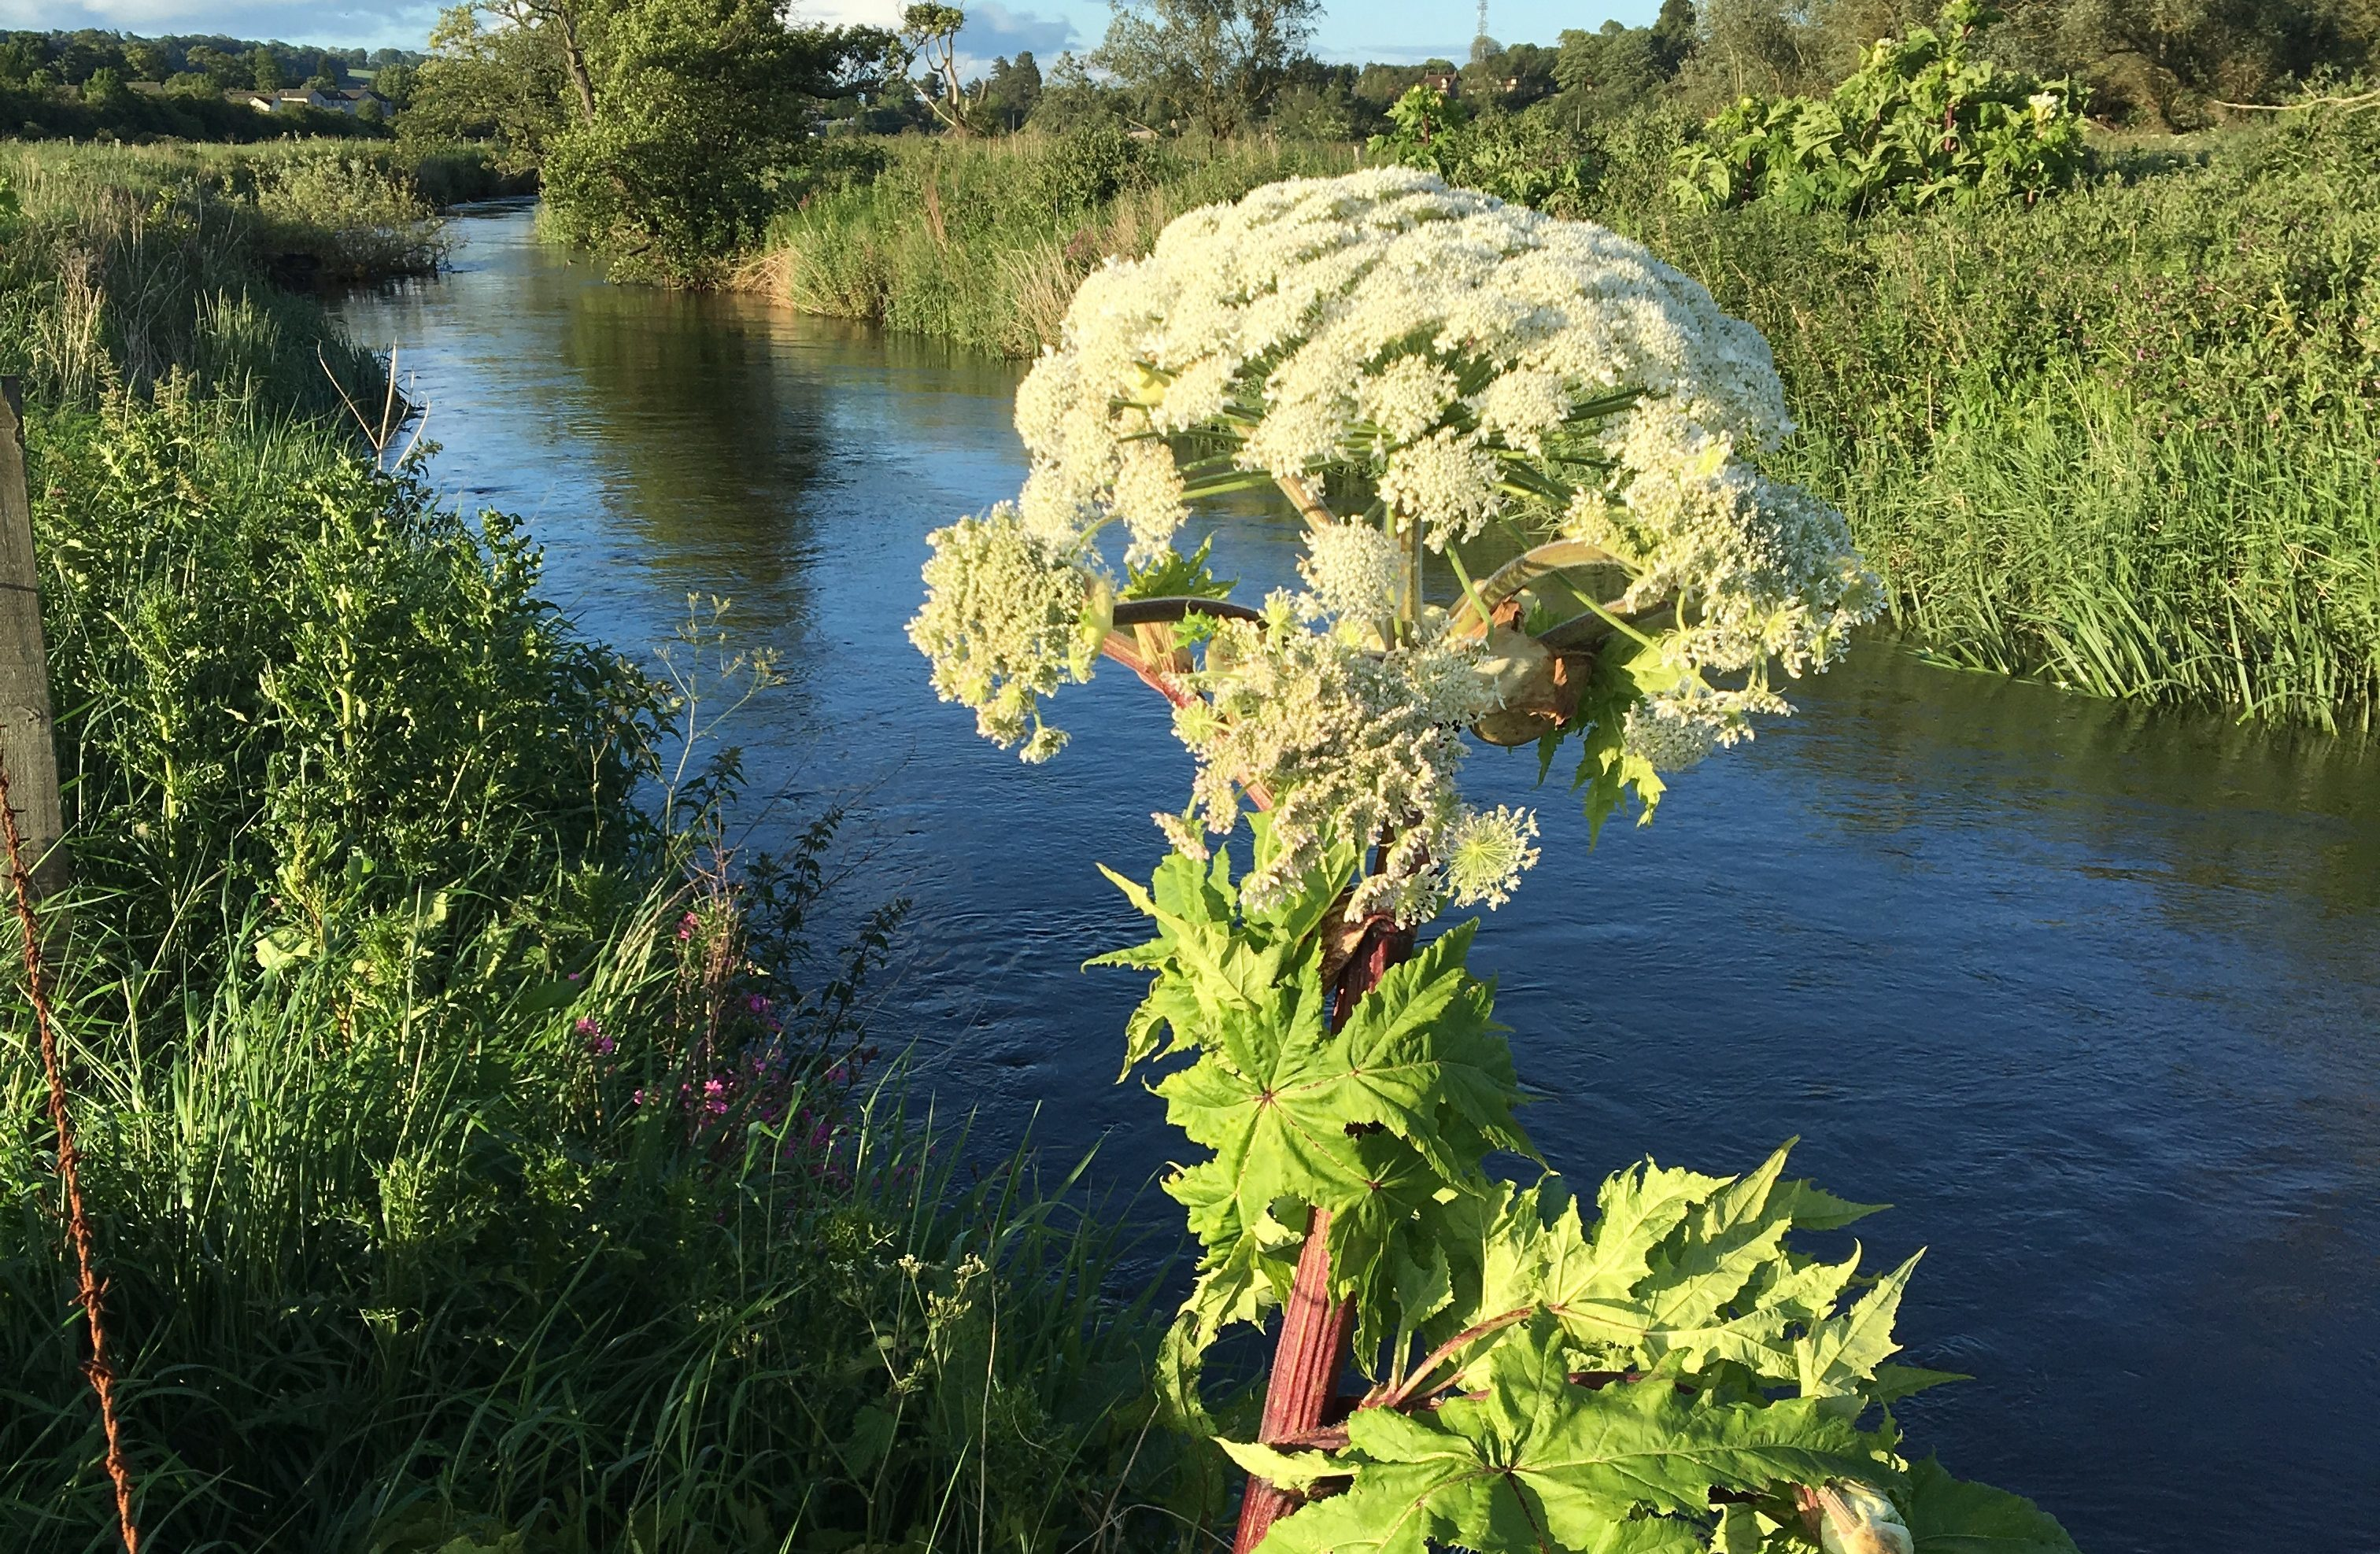 Giant hogweed on the banks of the River Eden in Cupar